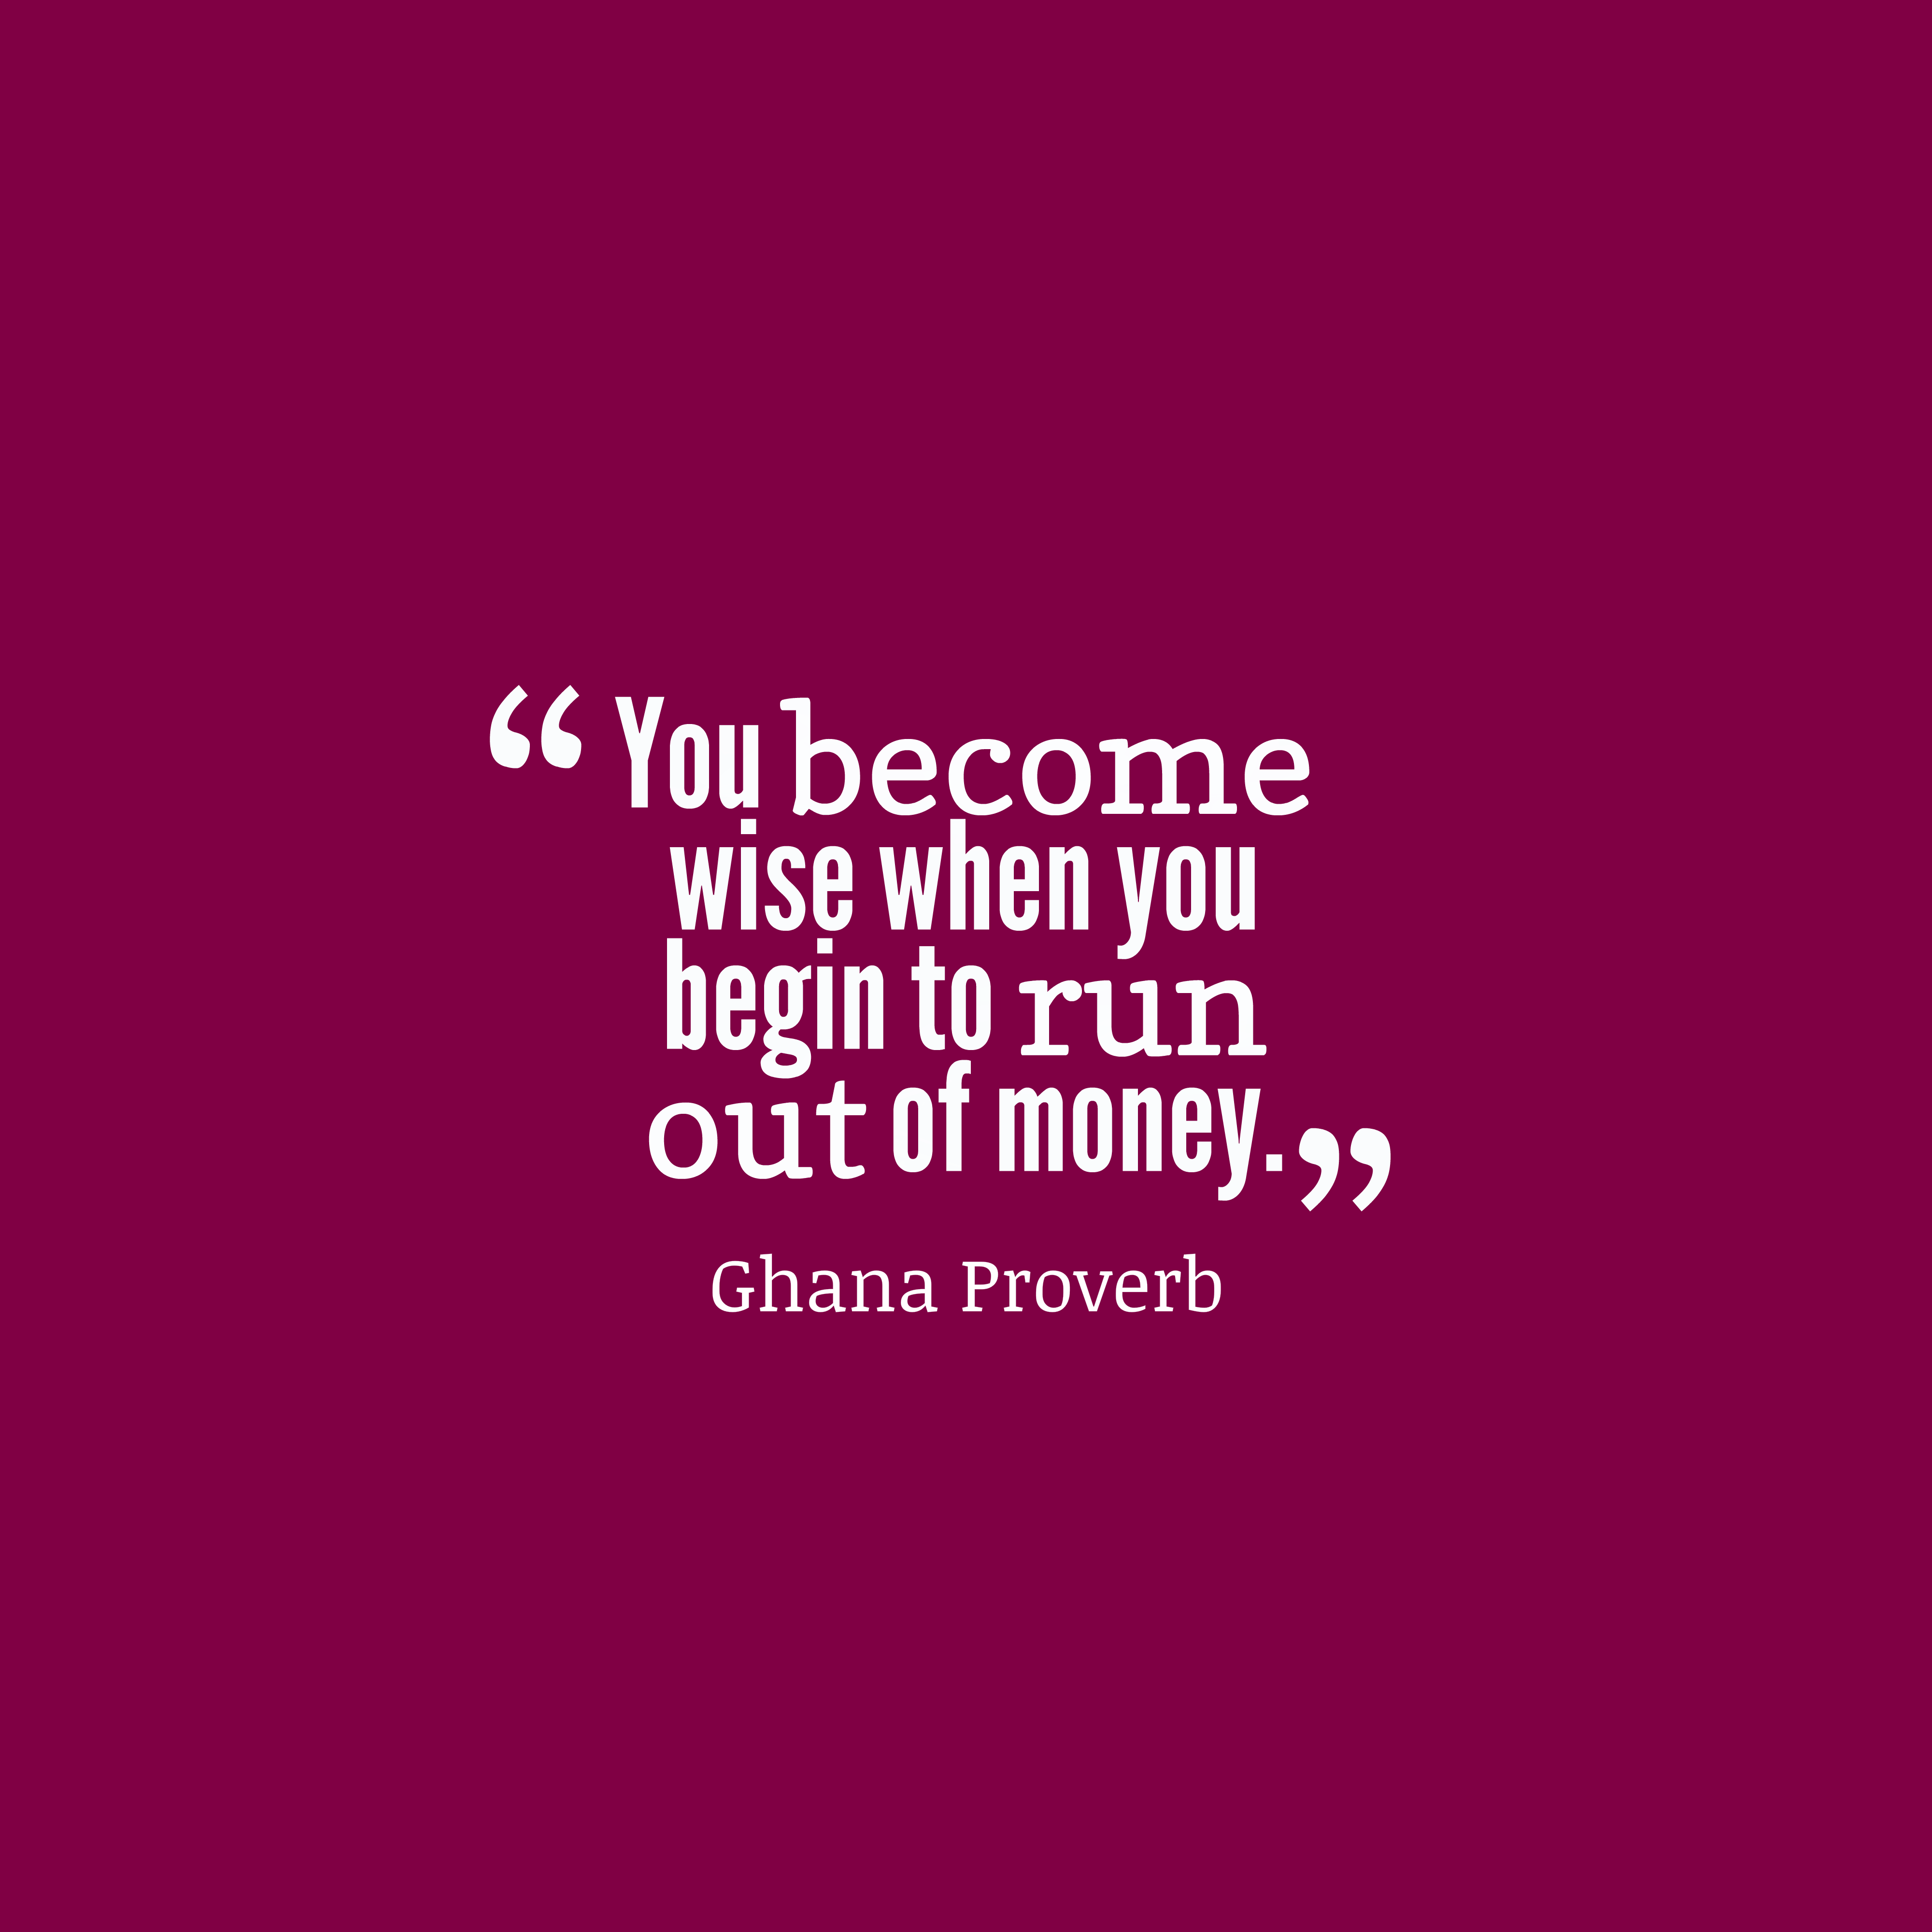 Quotes image of You become wise when you begin to run out of money.